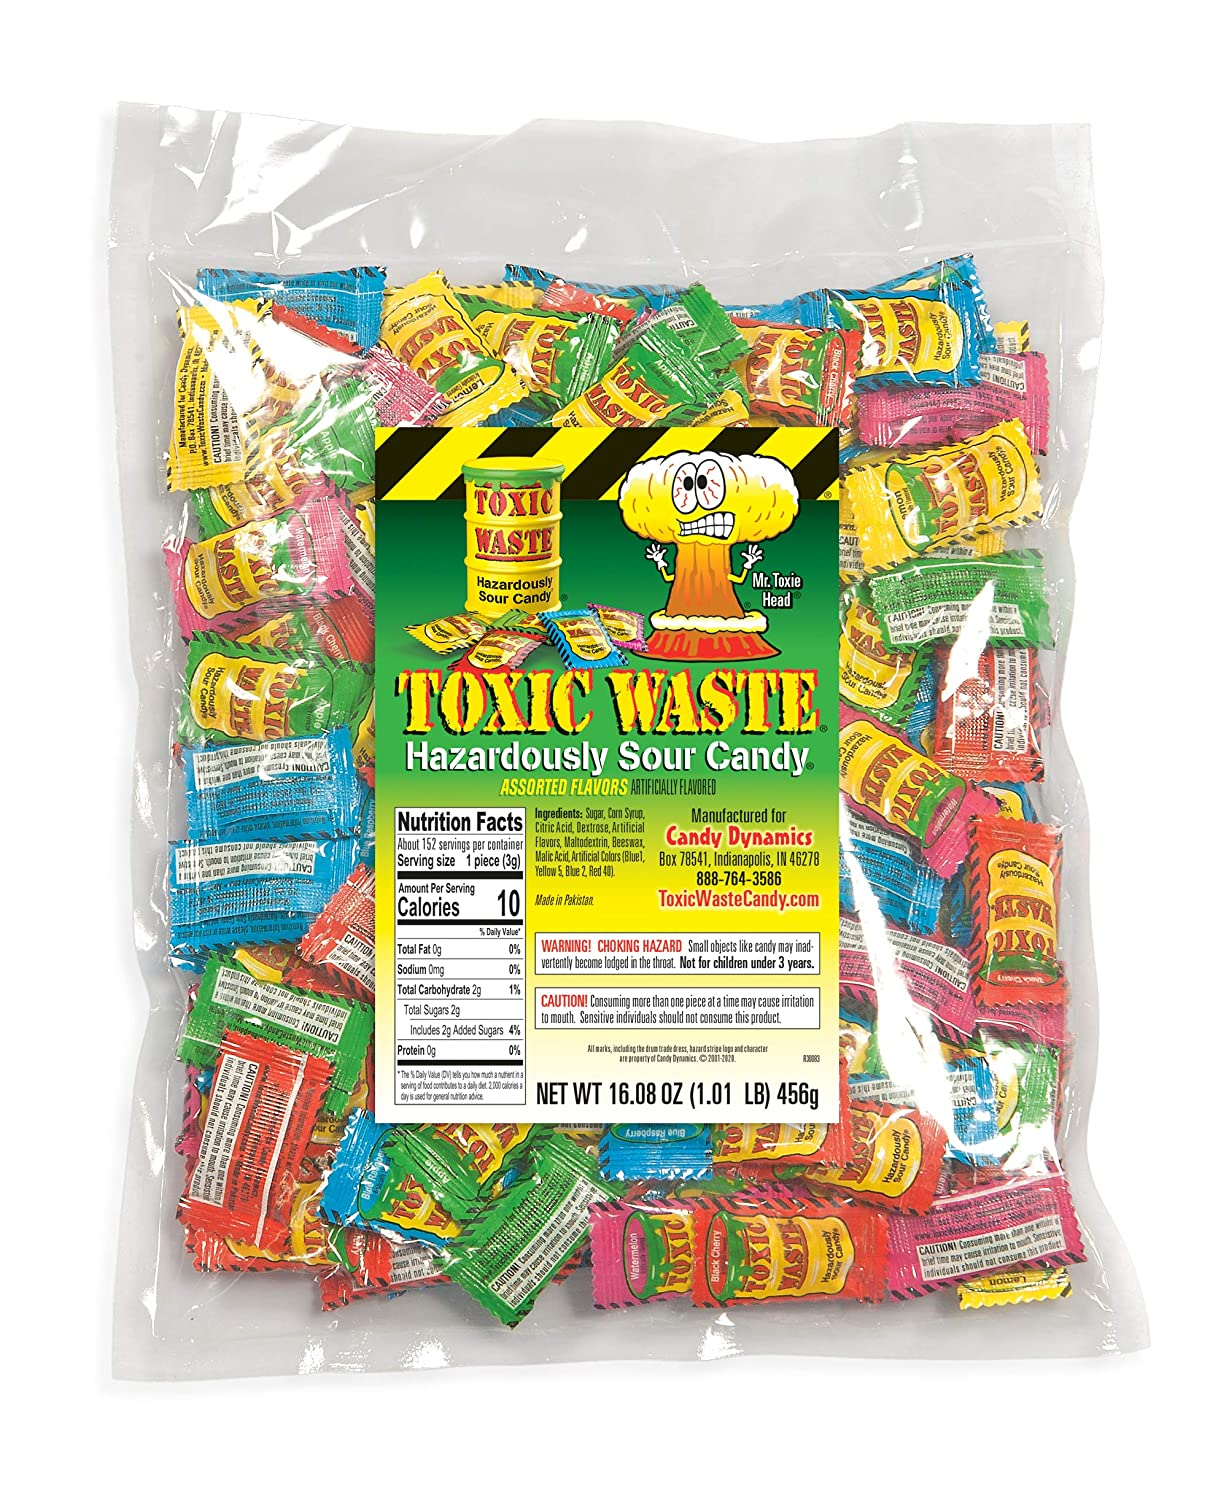 Toxic Waste - Hazardously Sour Candy, 5 Assorted Flavors ~ 1 pound bag : Sour Flavored Candies : Grocery & Gourmet Food